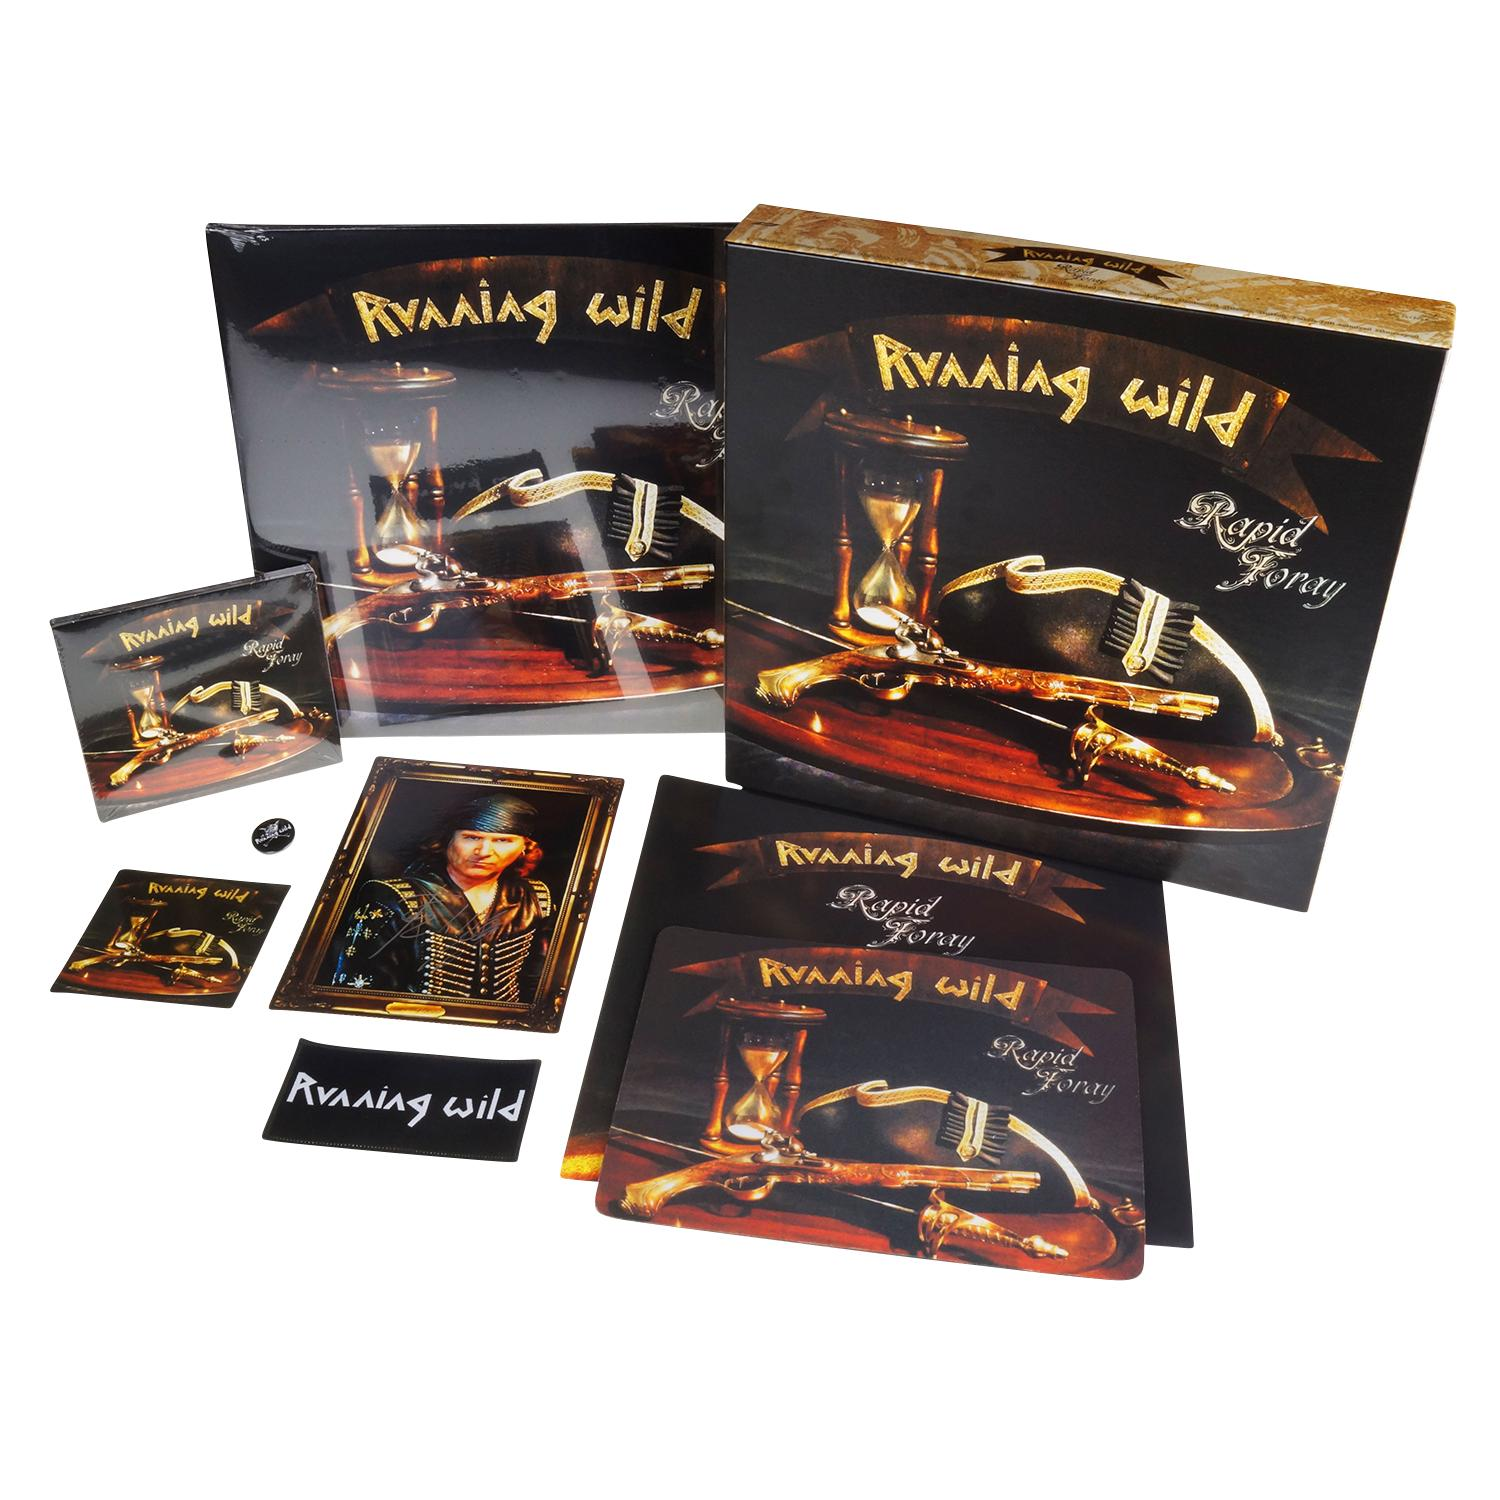 Running Wild - Rapid Foray Boxset